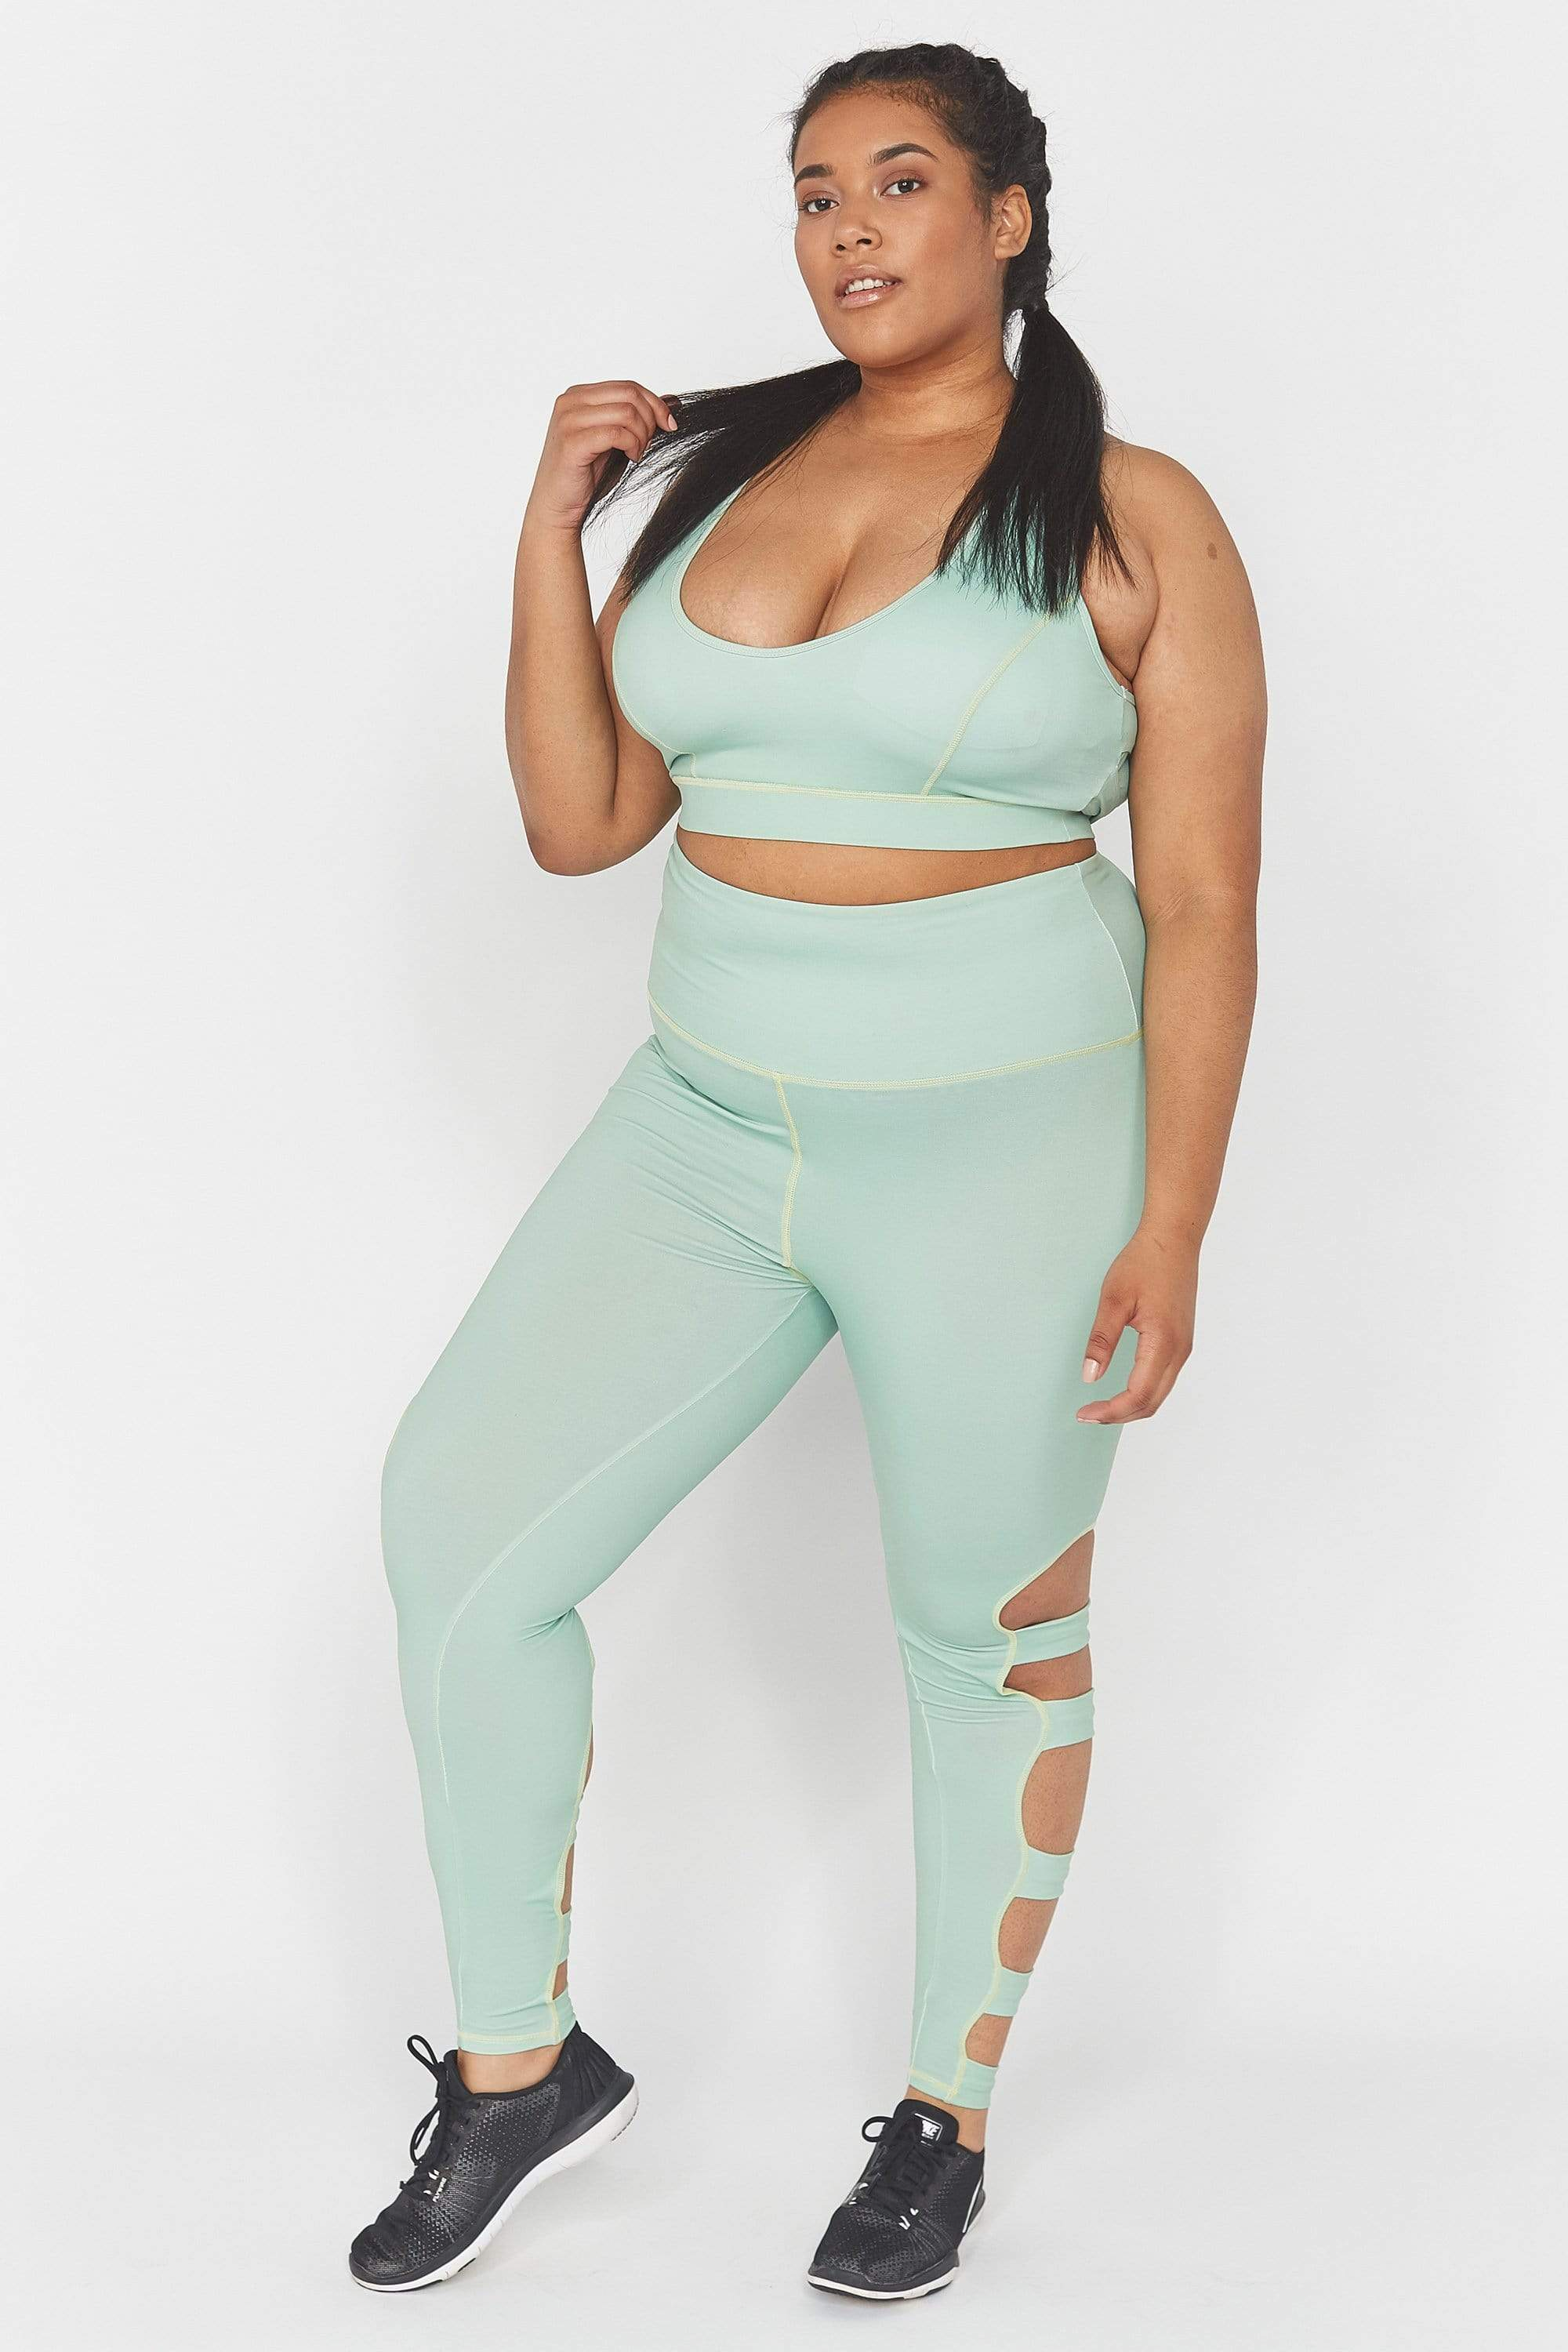 Wolf & Whistle Green Long Strappy Curve leggings UK 18 / US 14